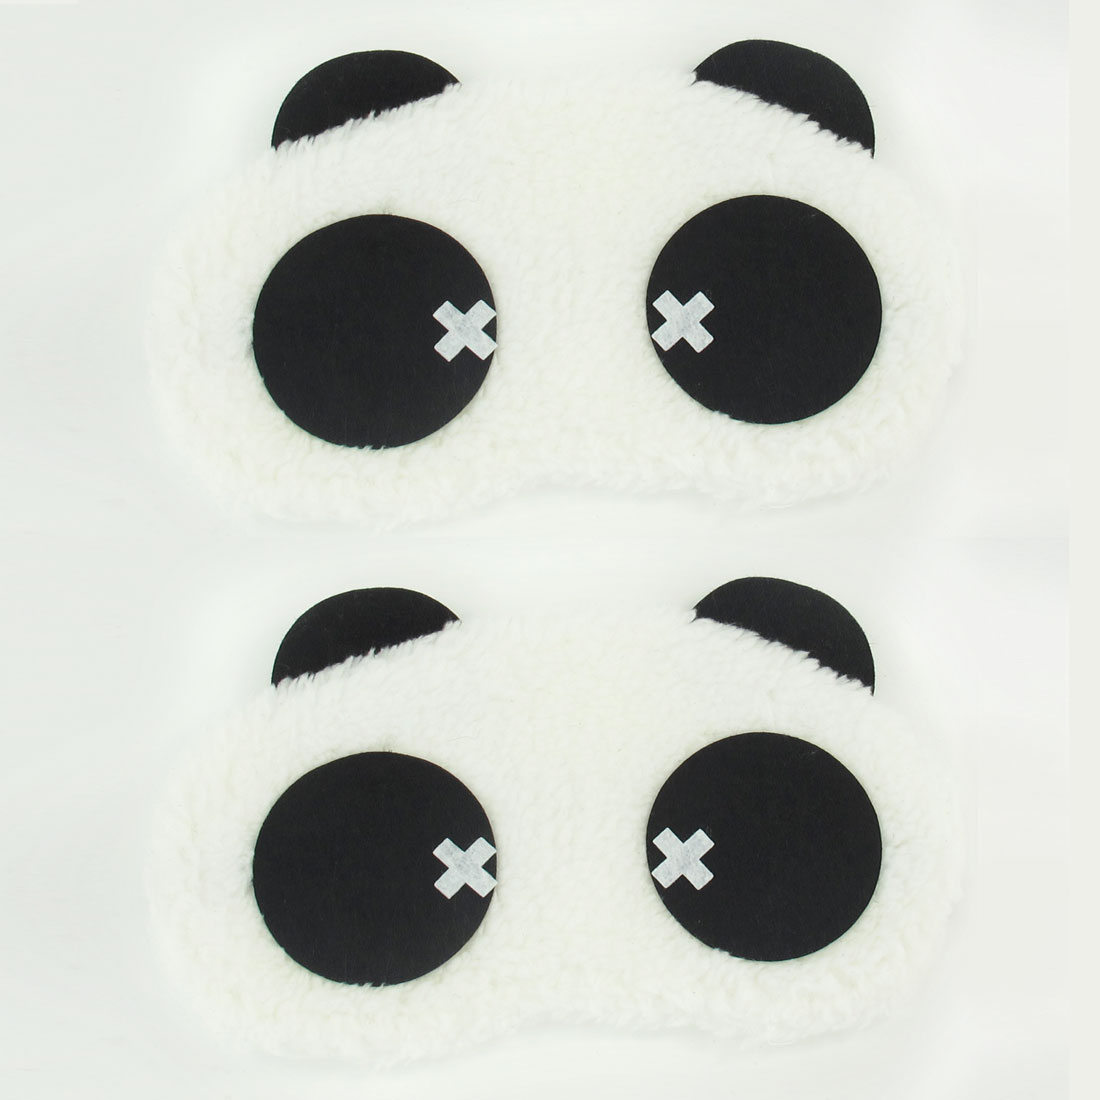 Black White Cross Decor Panda Head Shaped Eye Mask Cover Eyeshade Blindfold 2 Pcs